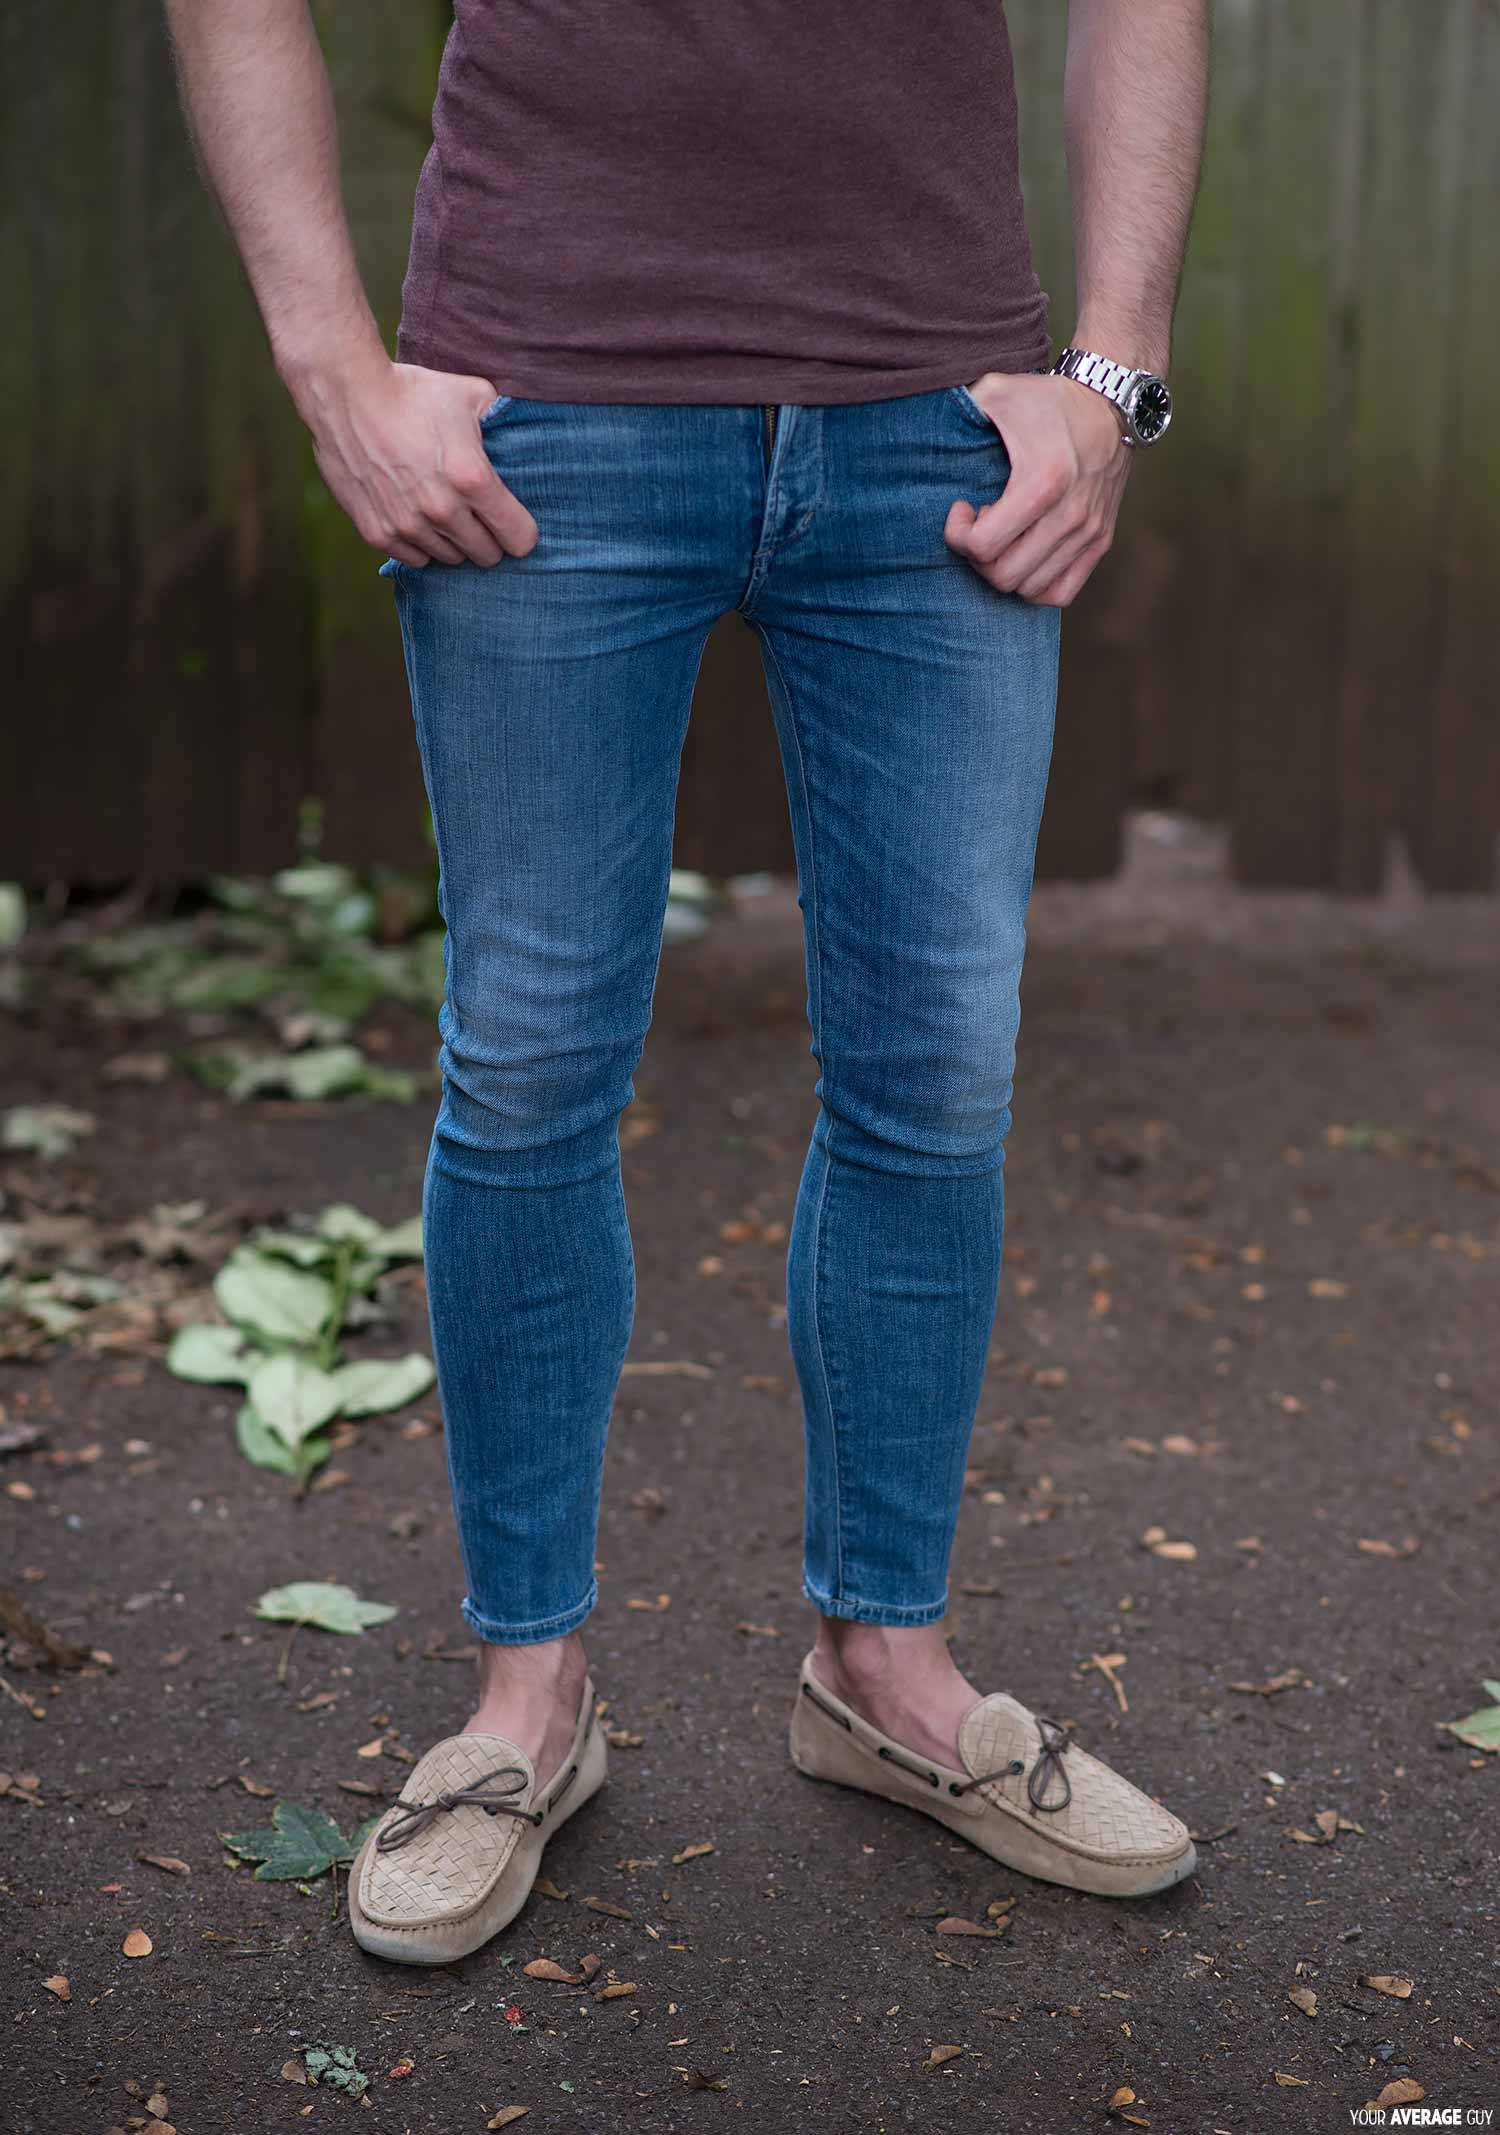 womens skinny jeans on a man